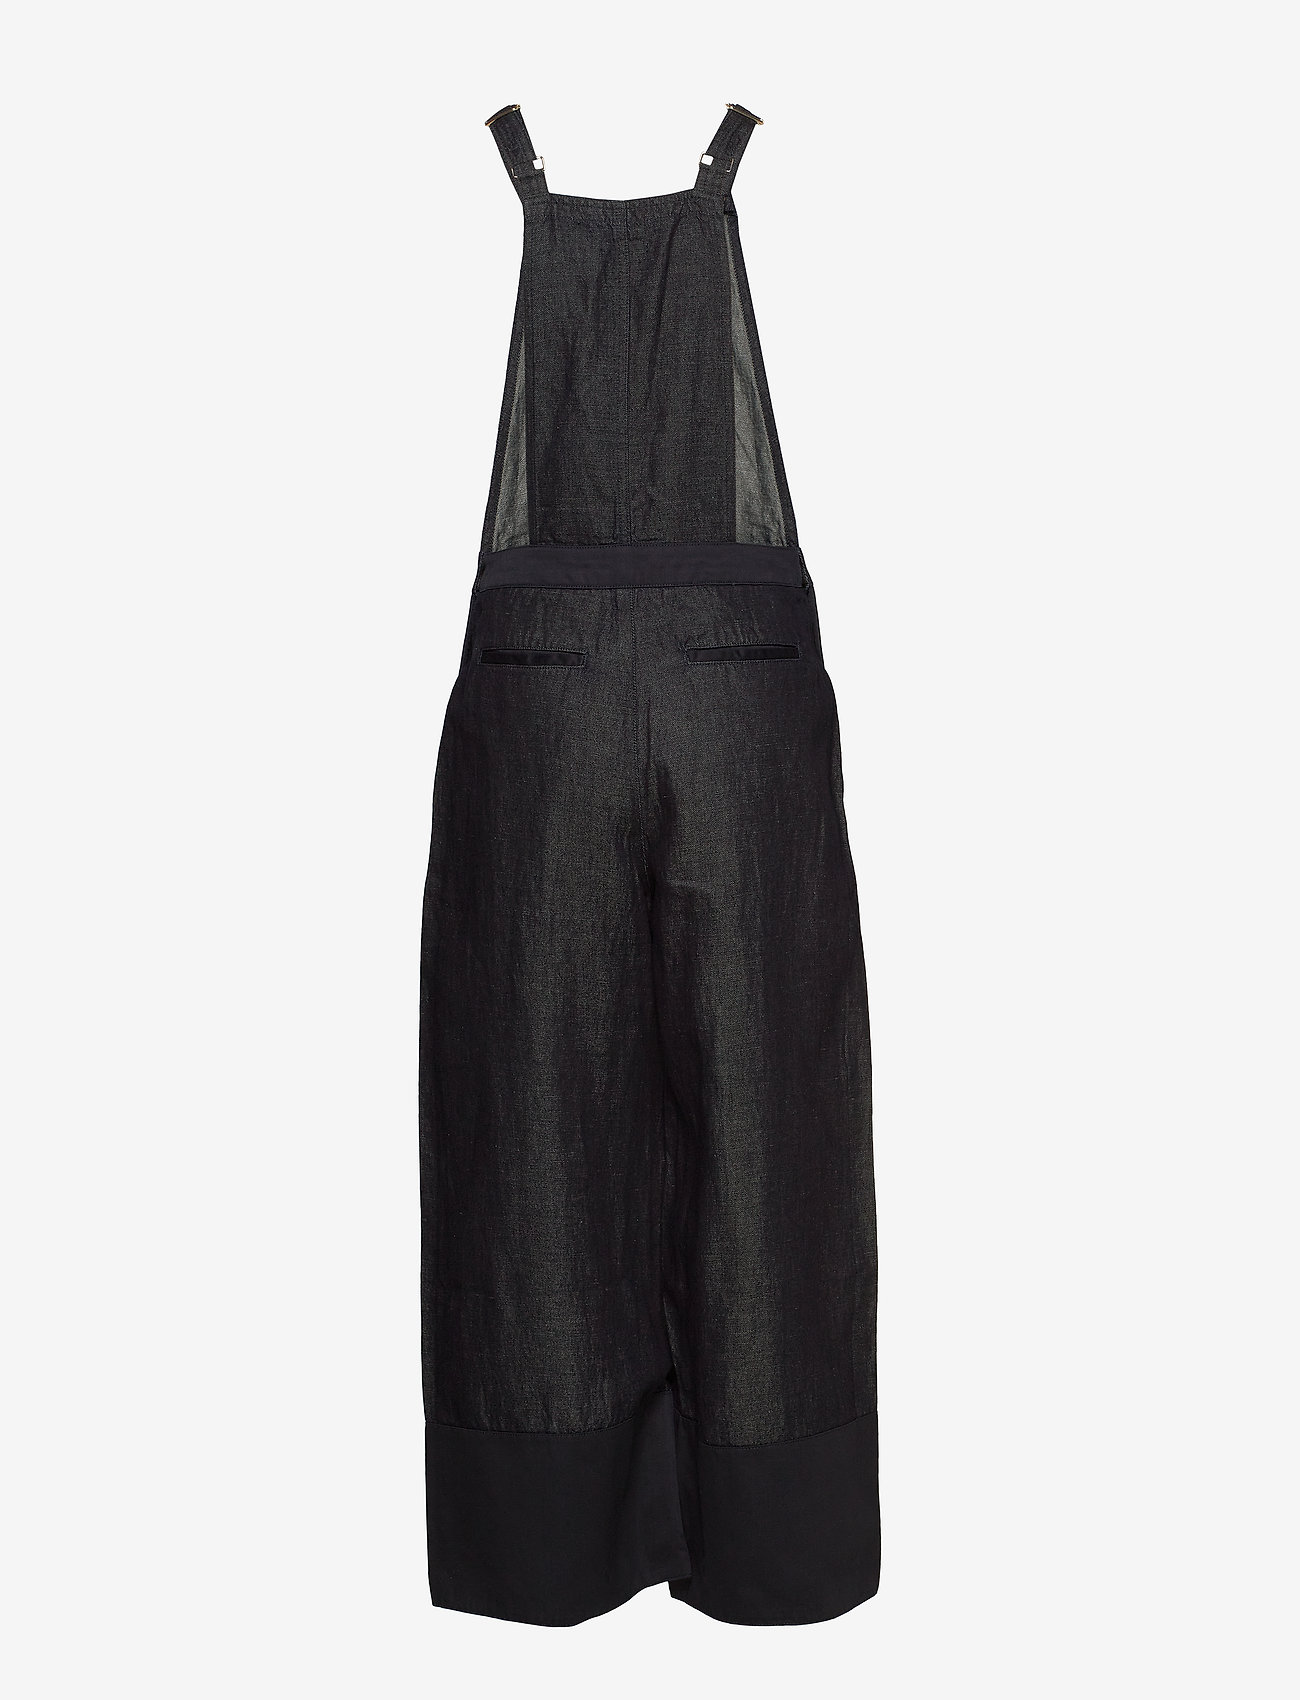 Scotch & Soda - Ams Blauw Indigo dungaree in cotton linen fabric - combinaisons - back in nimes - 1